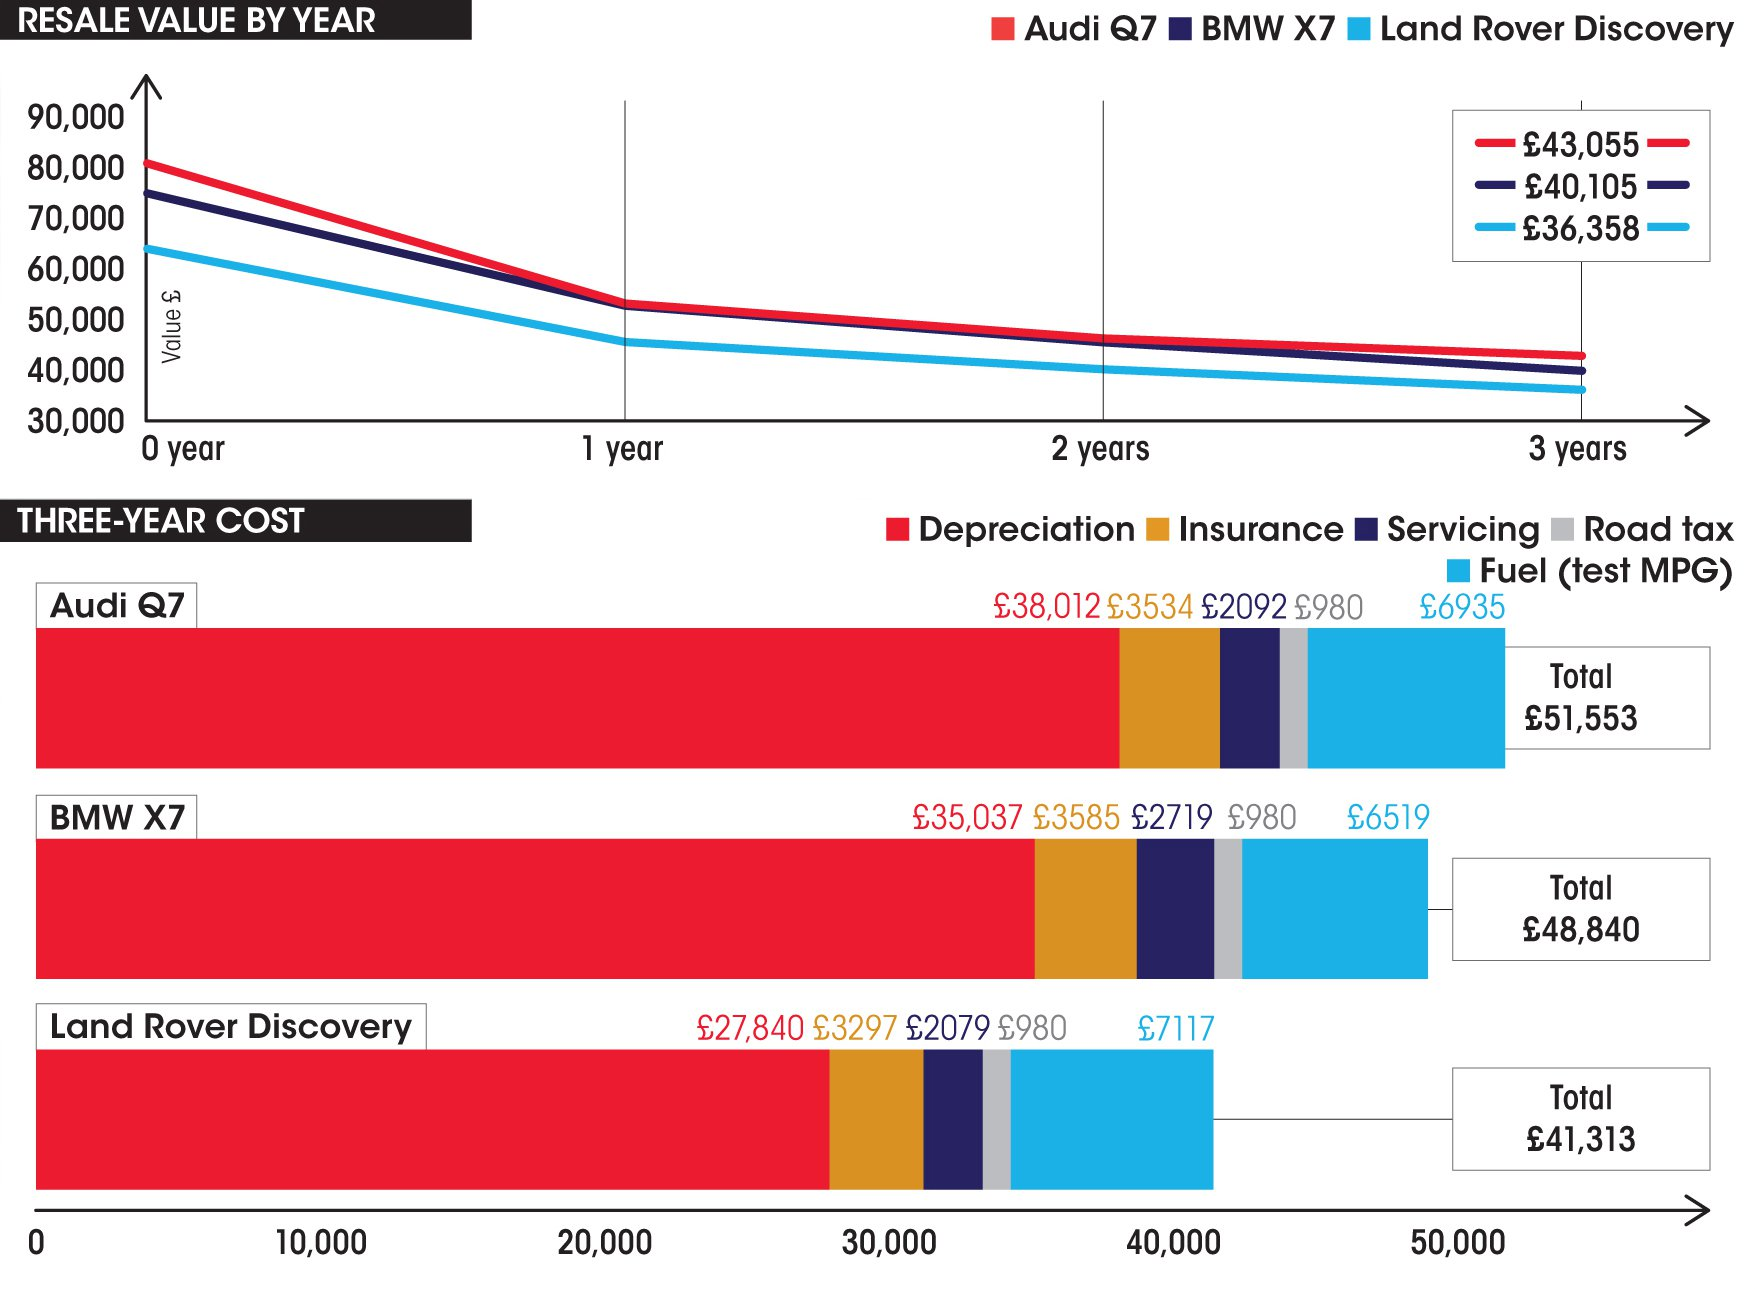 New Land Rover Discovery vs Audi Q7 vs BMW X7 costs